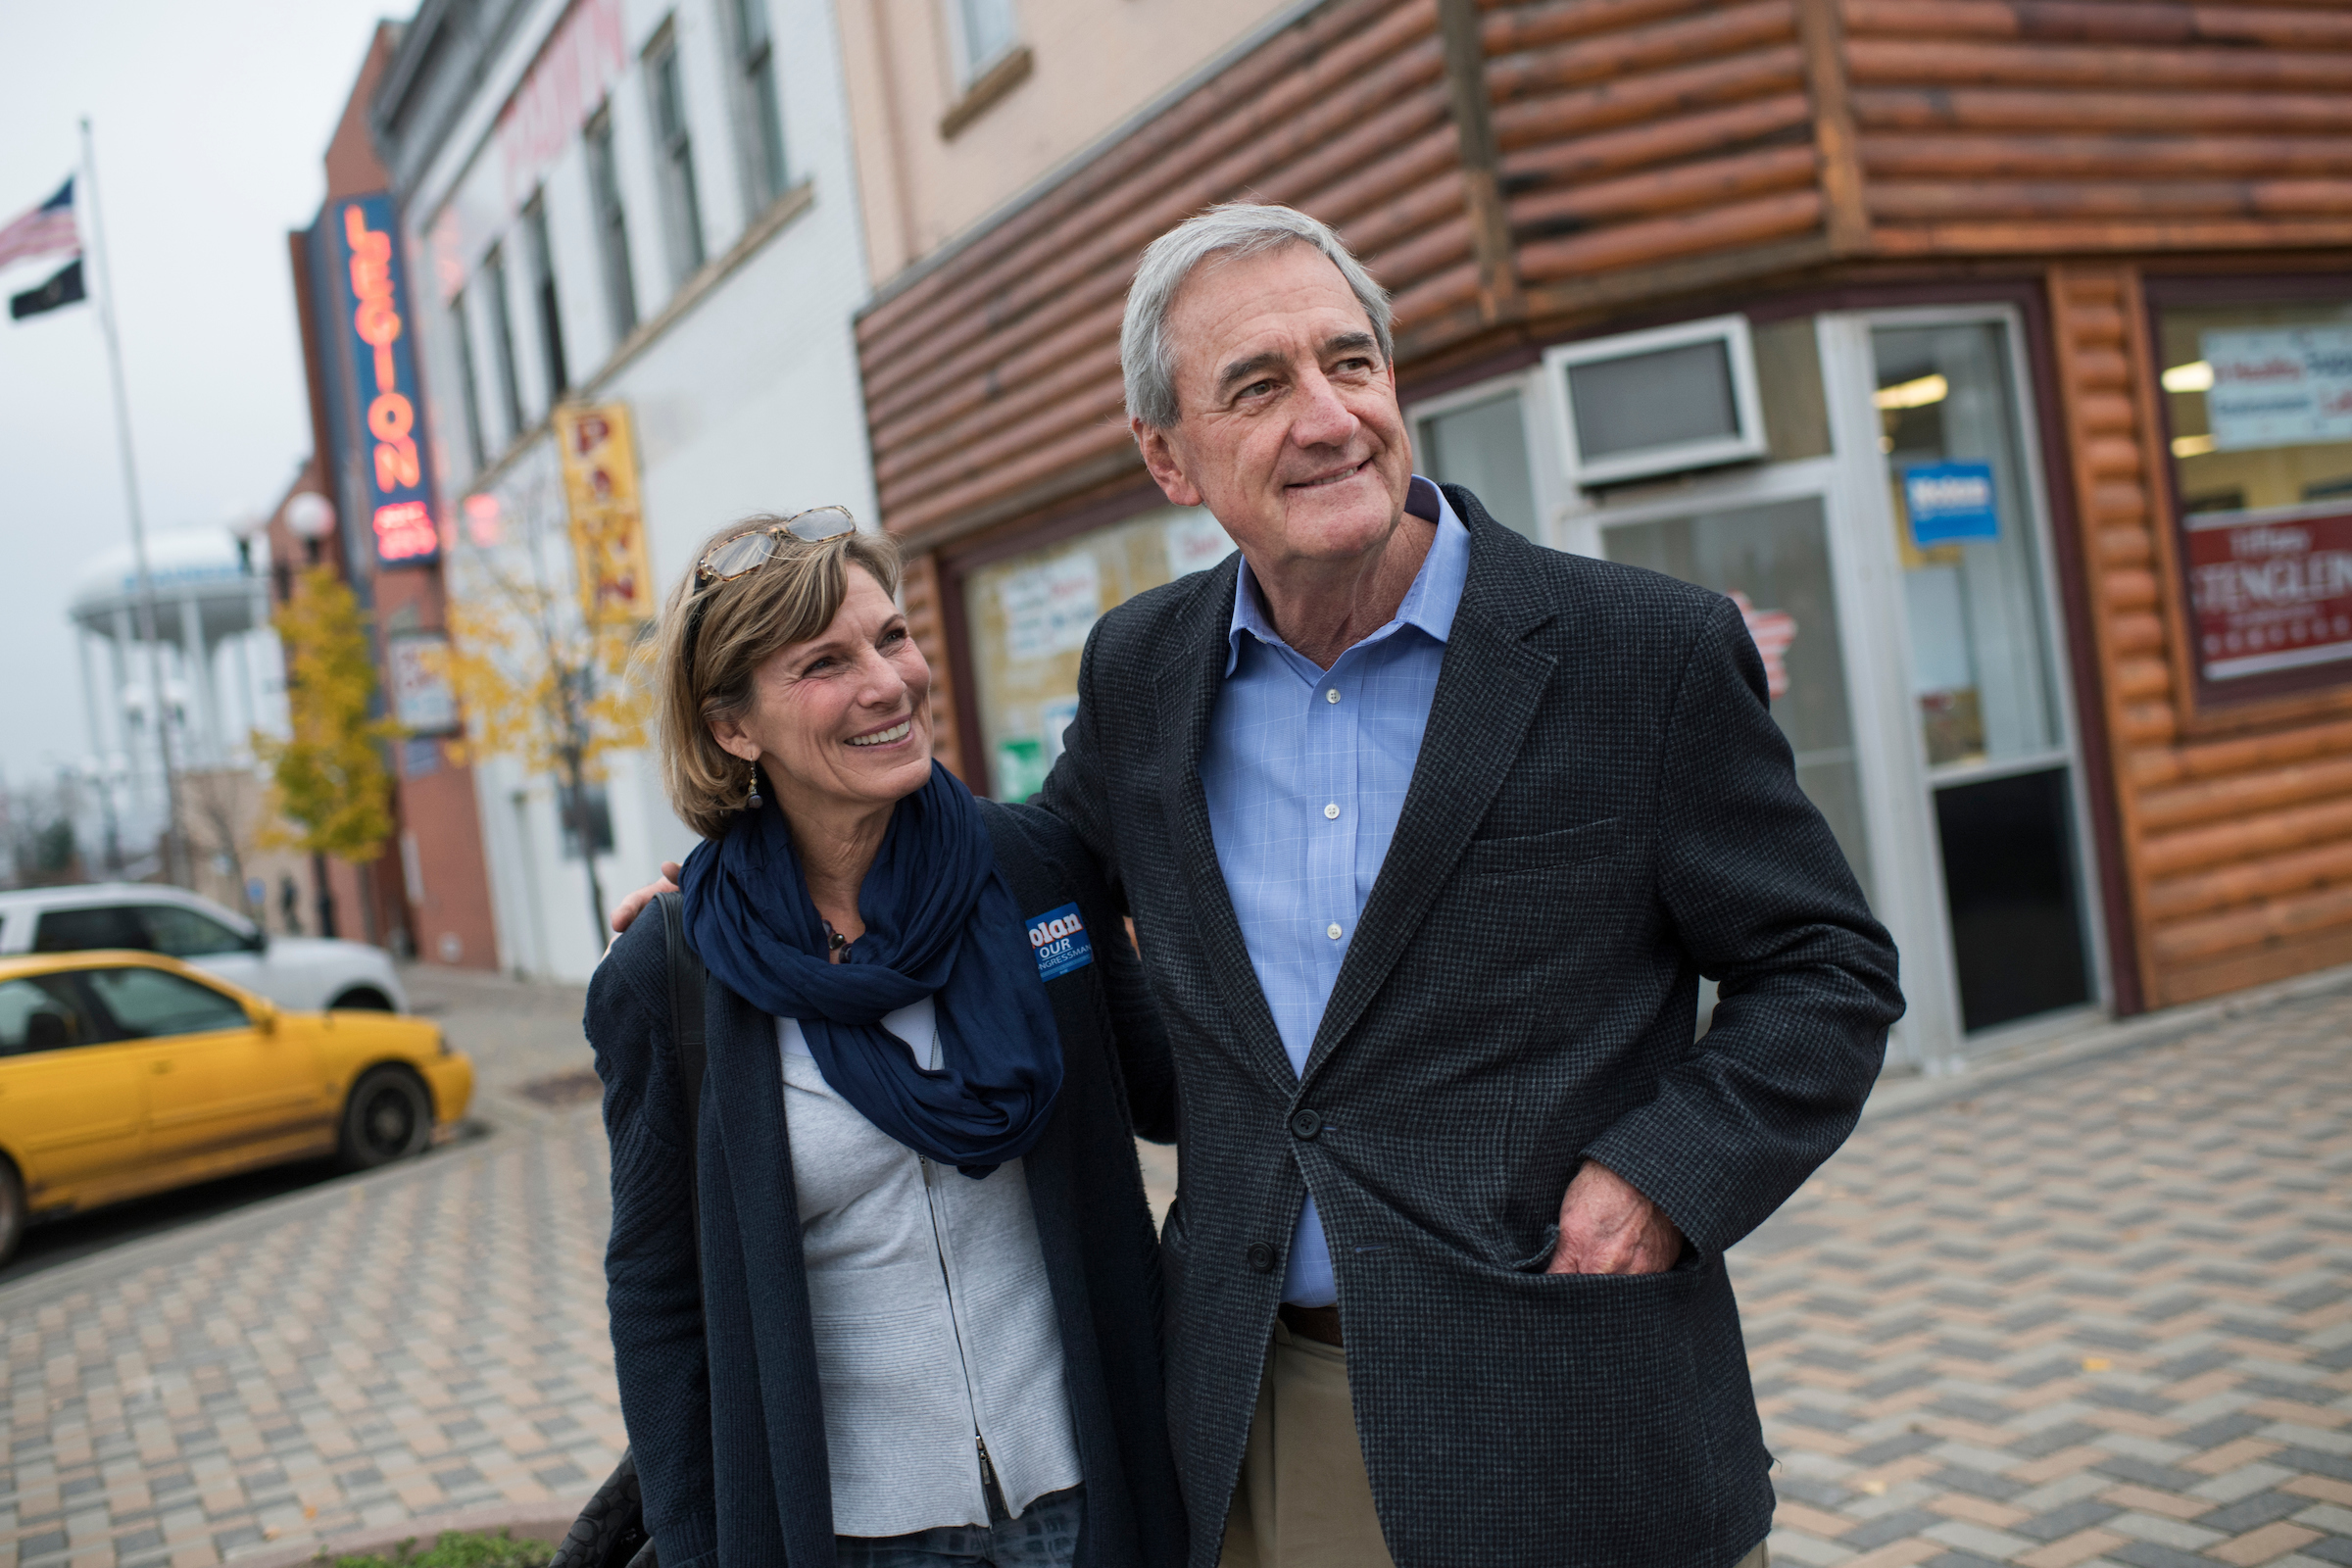 Nolan and his wife Mary leave his campaign office in Brainerd, Minn., on their way to his annual fish fry on Oct. 27. (Tom Williams/CQ Roll Call)